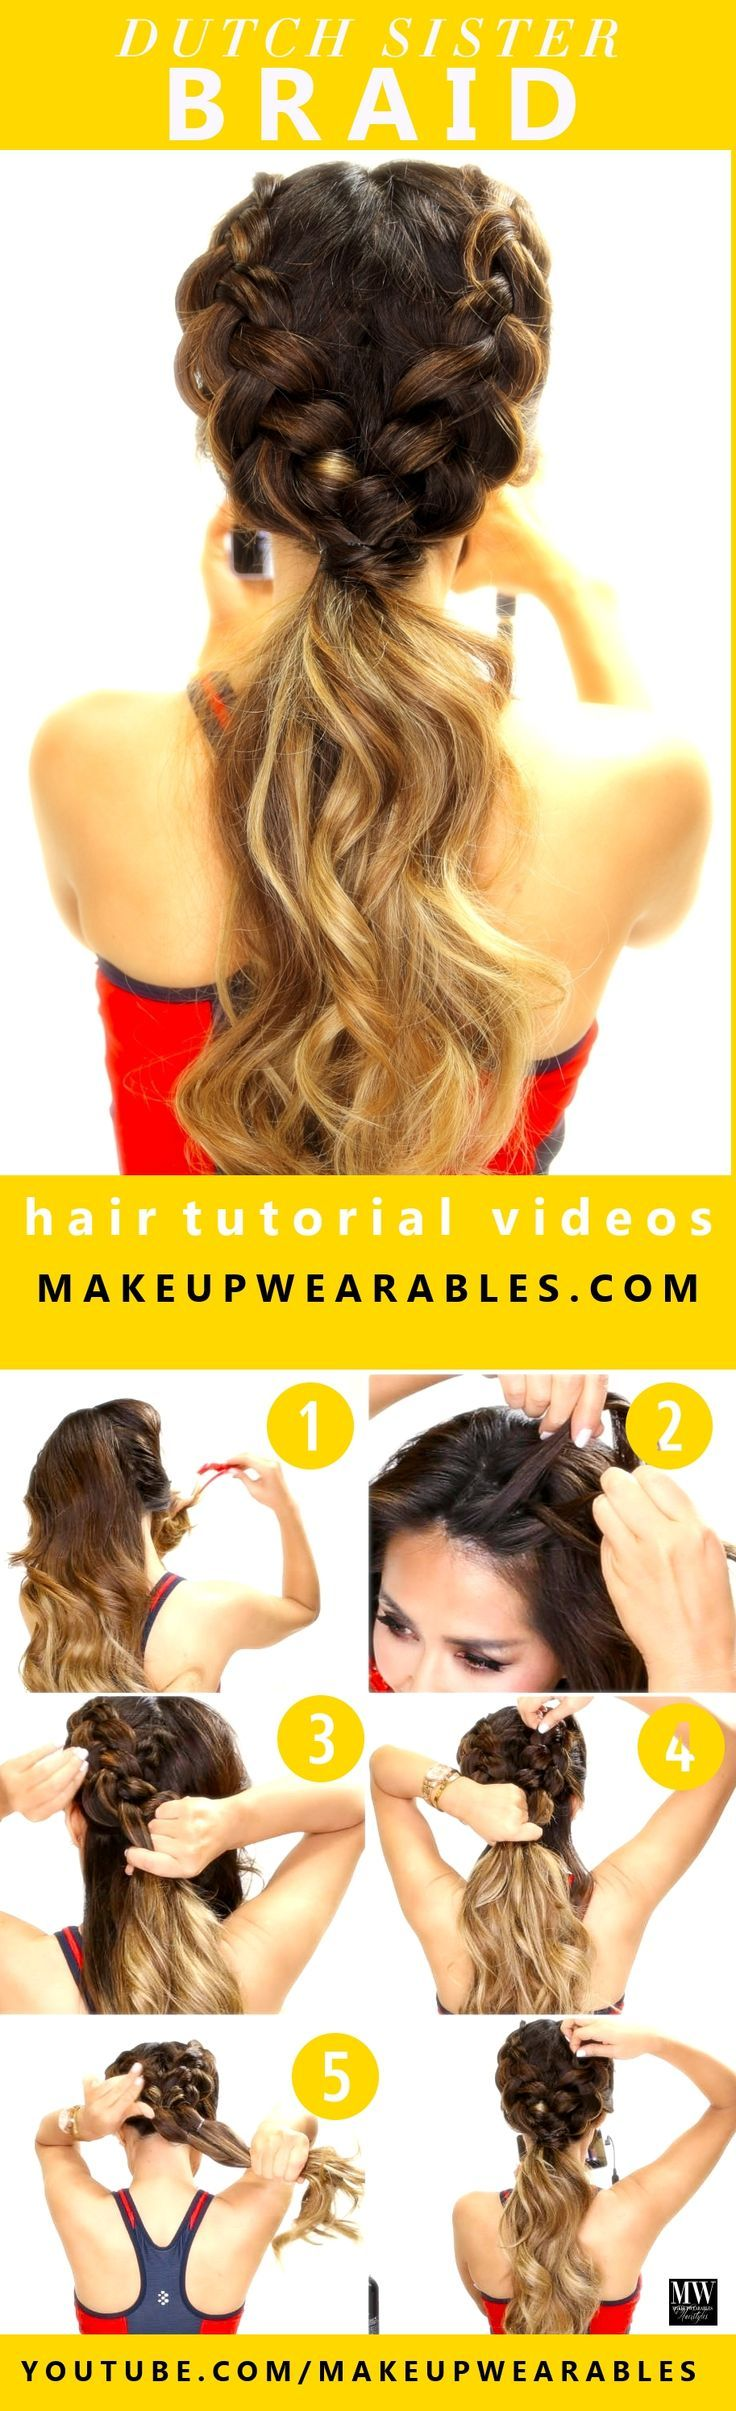 supereasy hairstyles for lazy girls with tutorials super easy